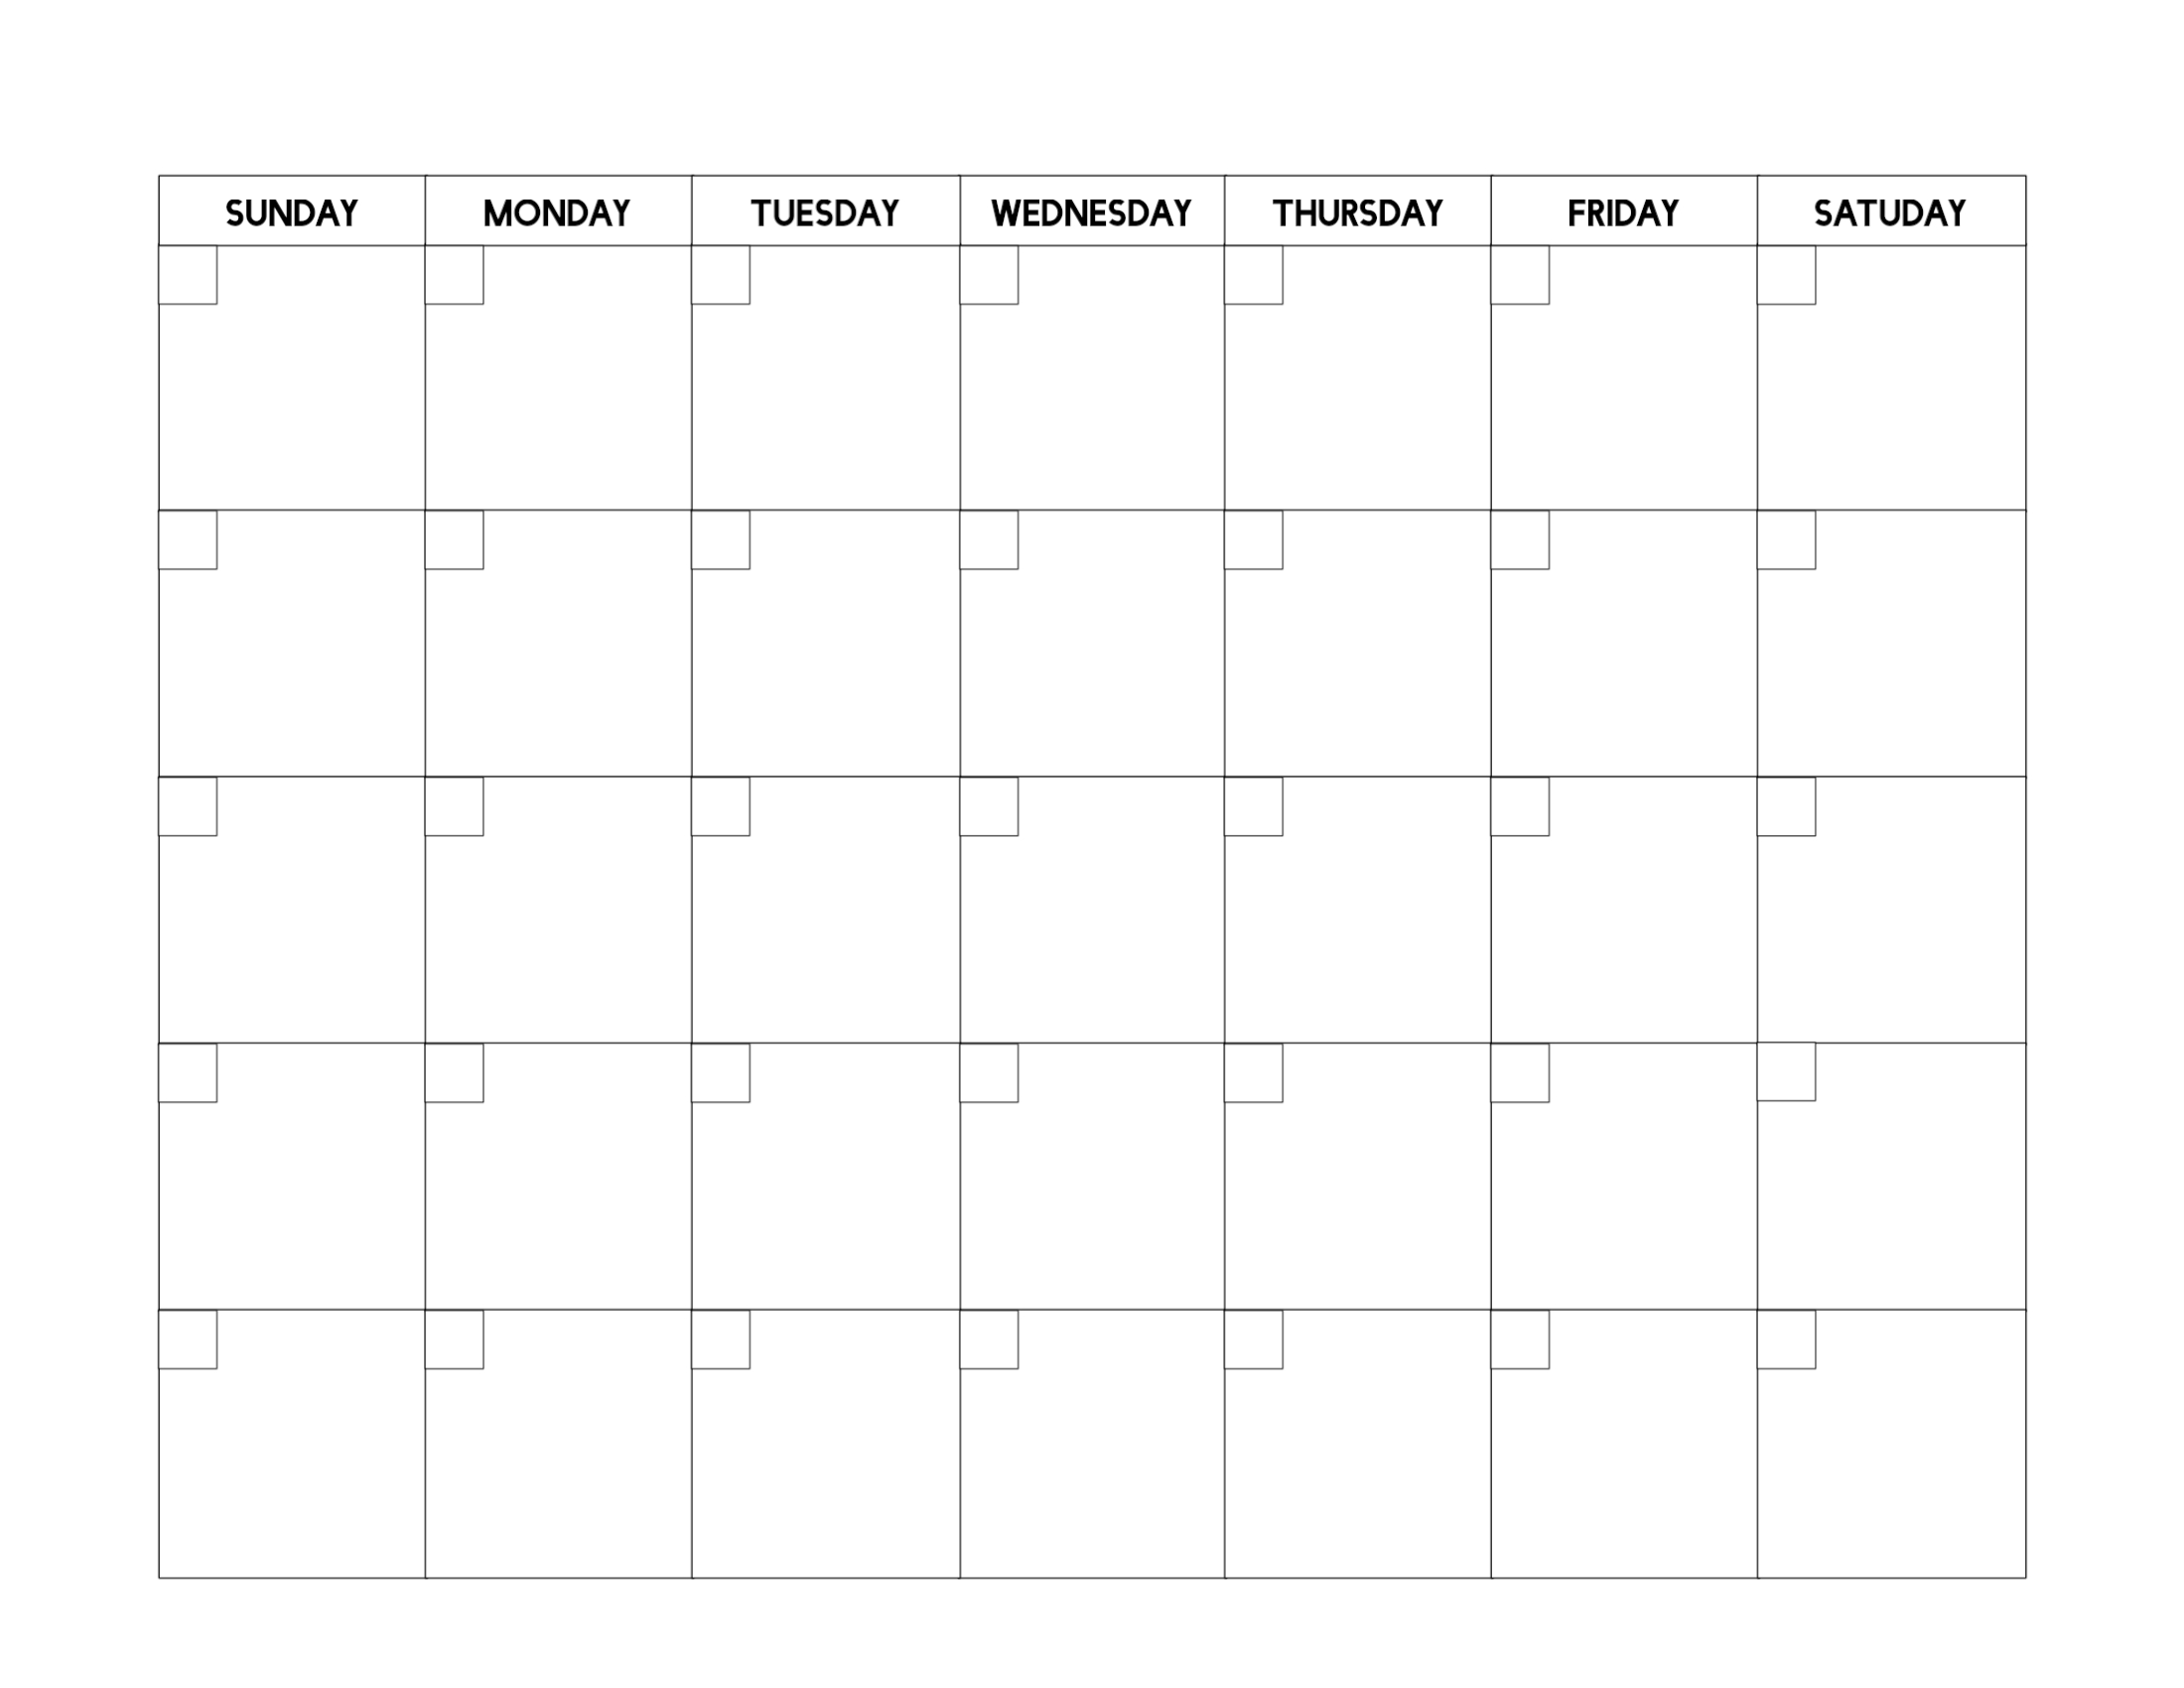 Free Printable Blank Calendar Template - Paper Trail Design